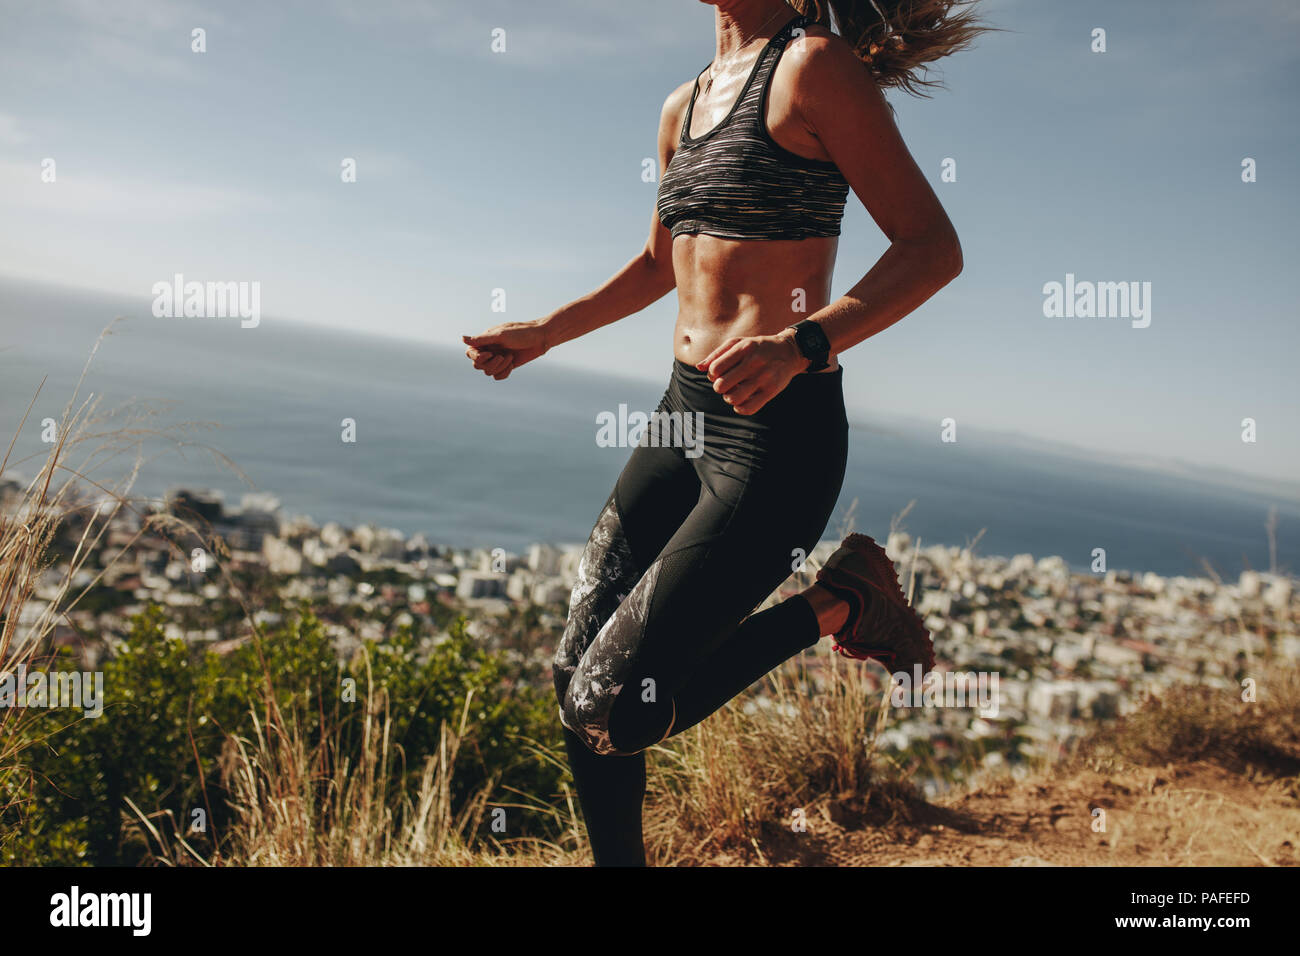 Healthy woman sprinting over mountain trail. Female doing running workout on path over hill. Cropped shot. - Stock Image